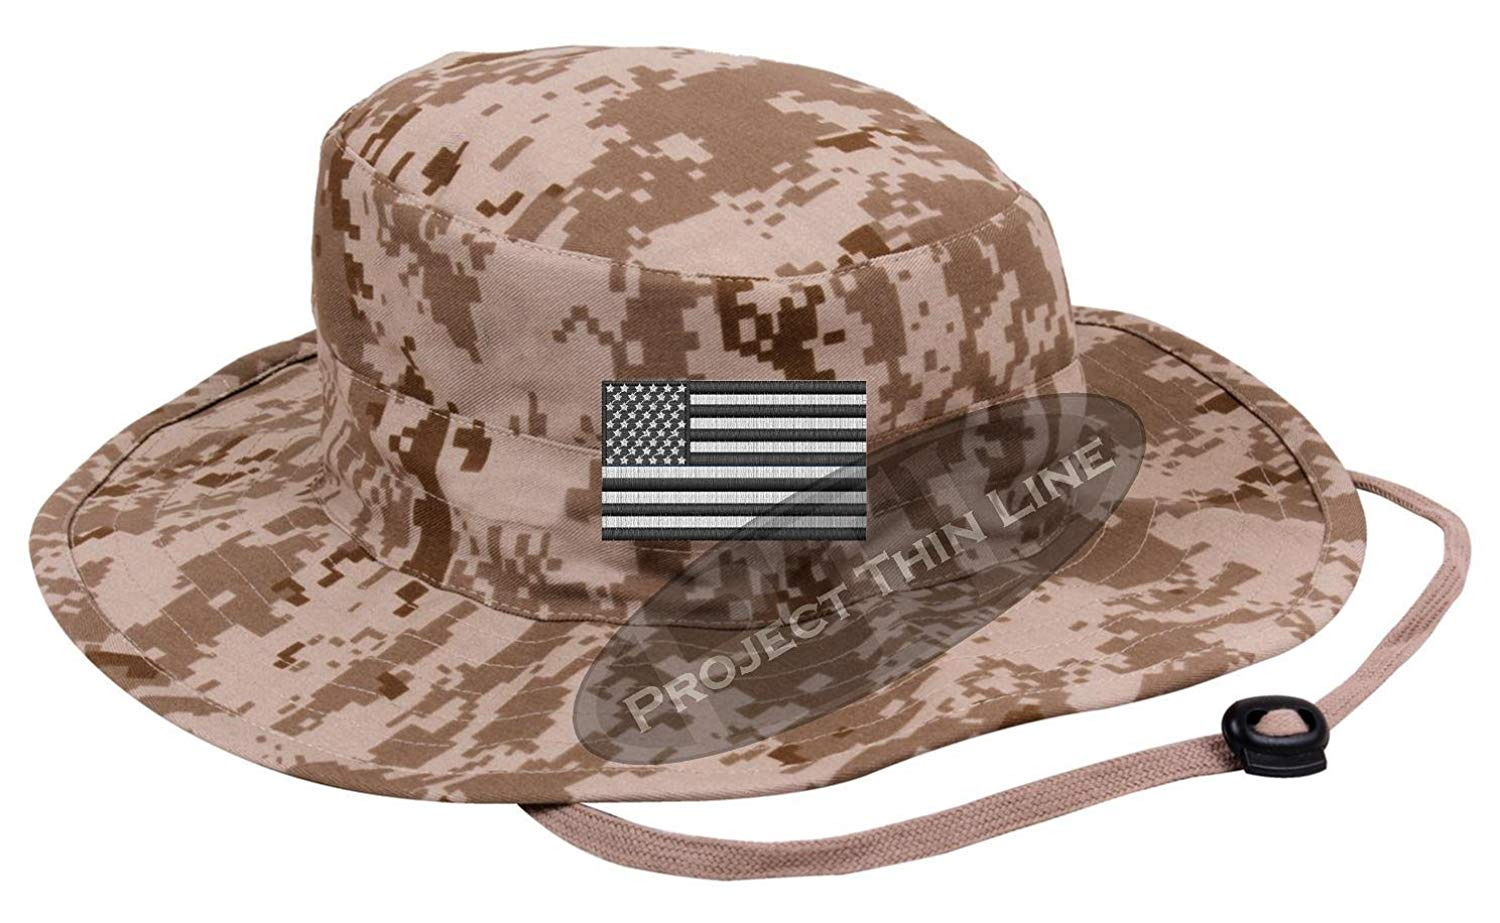 ccbc5051e07 Get Quotations · Project Thin Line Embroidered Tactical Subdued Black and  White American Flag boonie Adjustable Hat